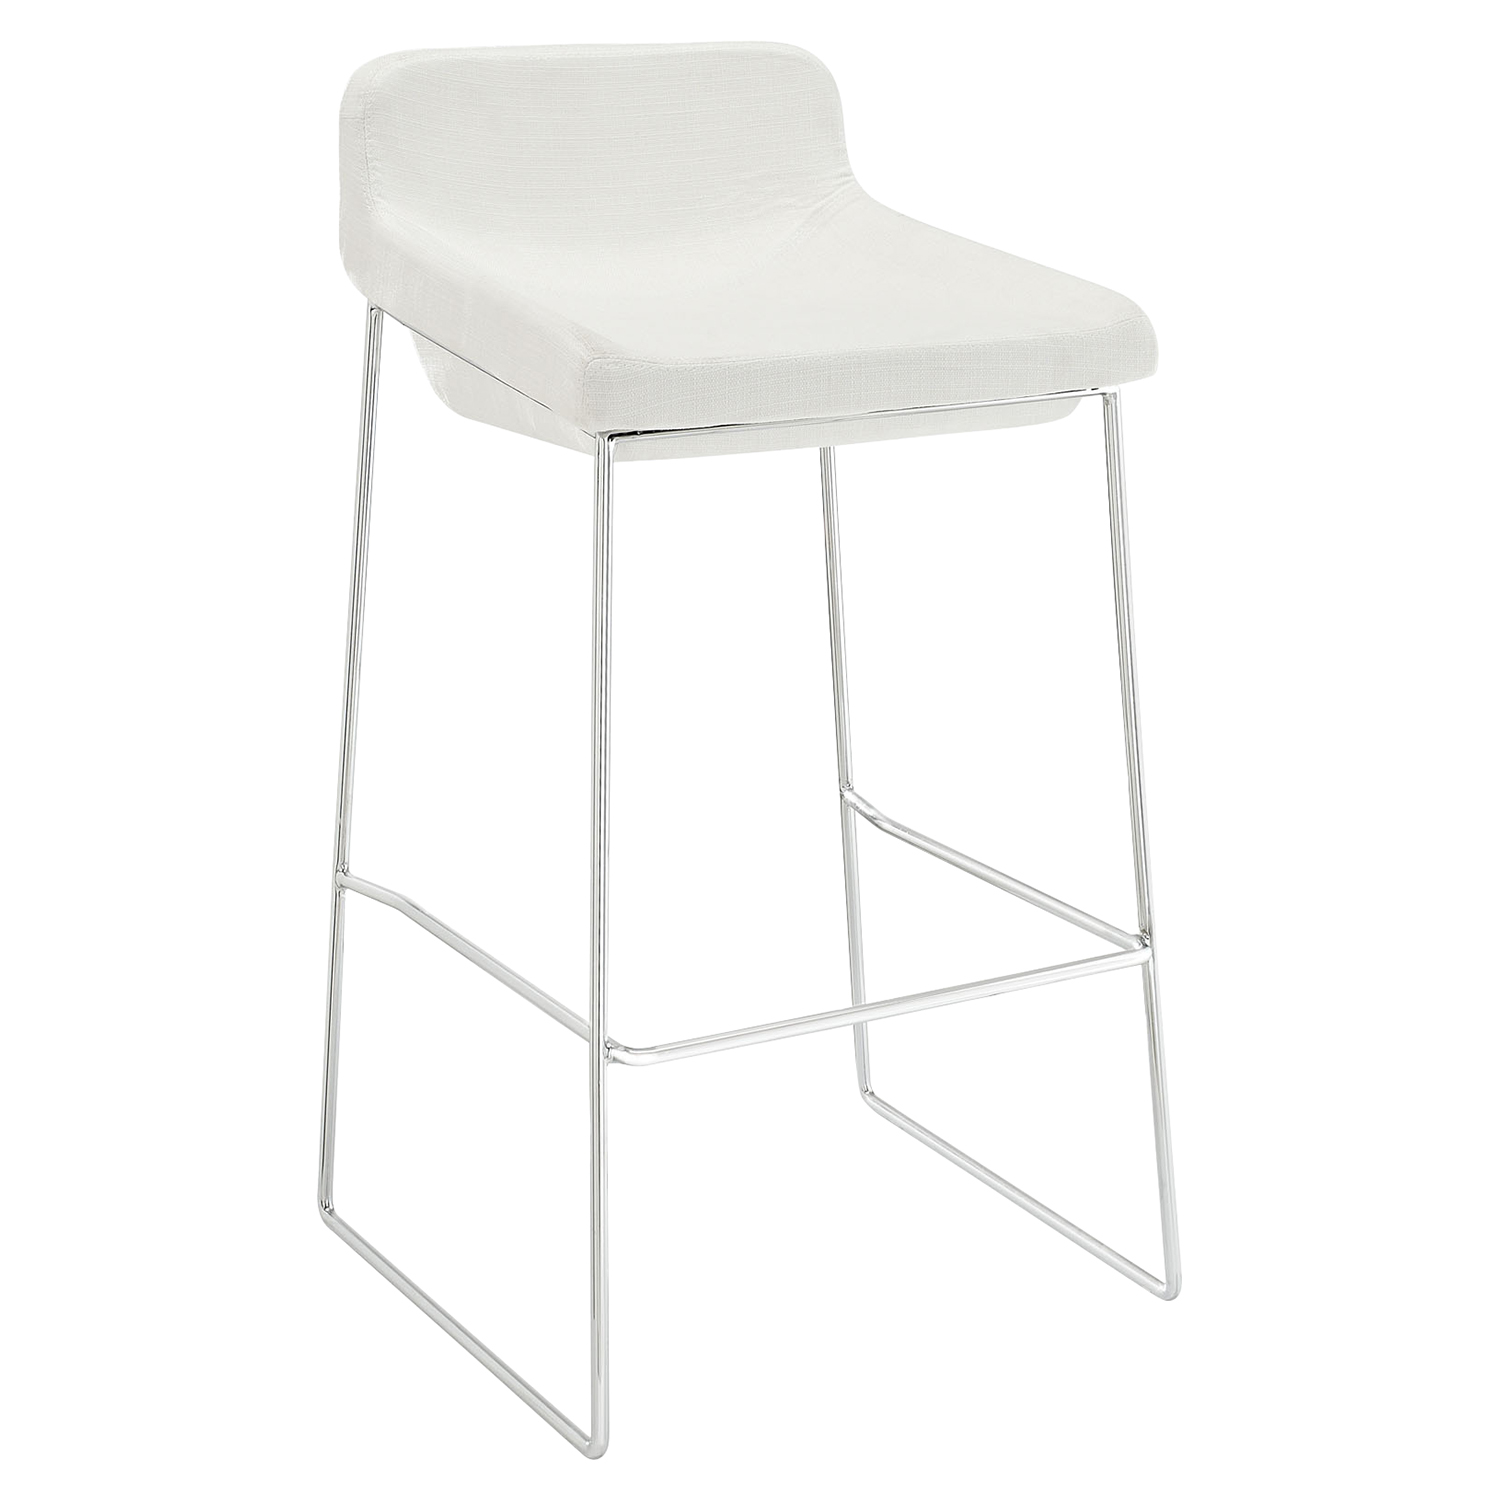 Garner Backless Bar Stool - White